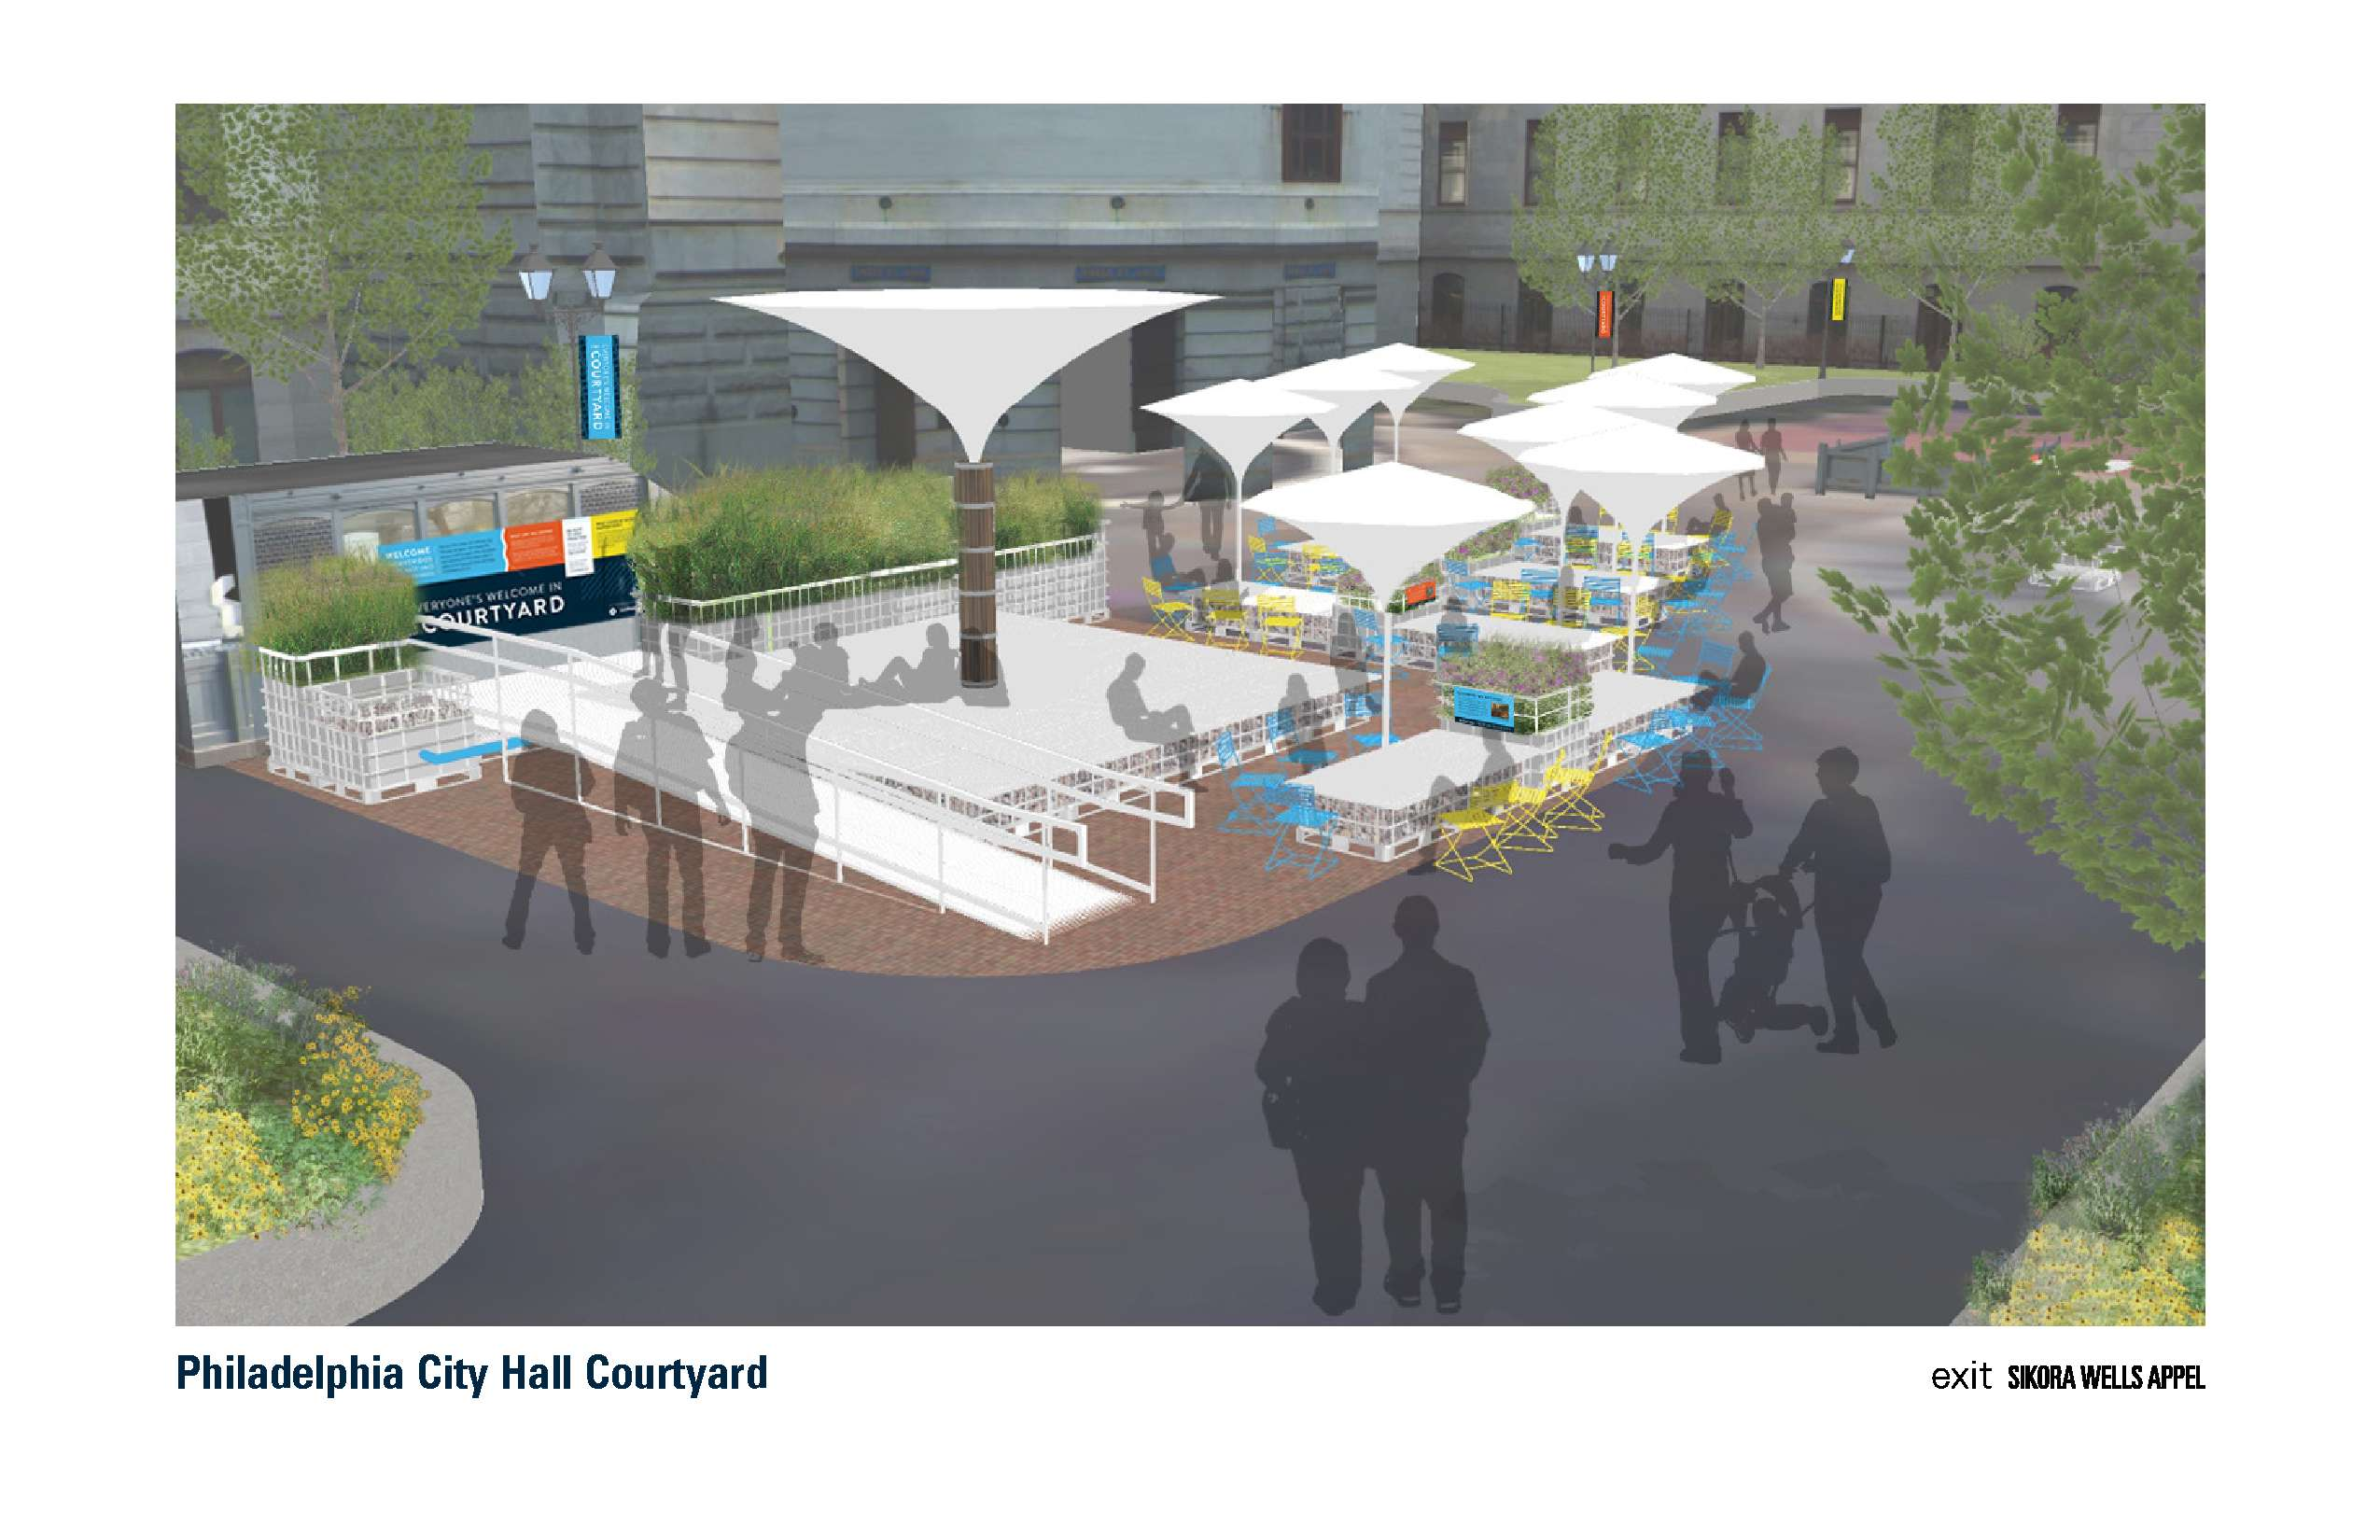 Landscape architecture firm Sikora Wells Appel plans to use water totes and rain-catching umbrellas for a Culture on Tap pop-up beer garden in Philadelphia´s City Hall courtyard this summer.